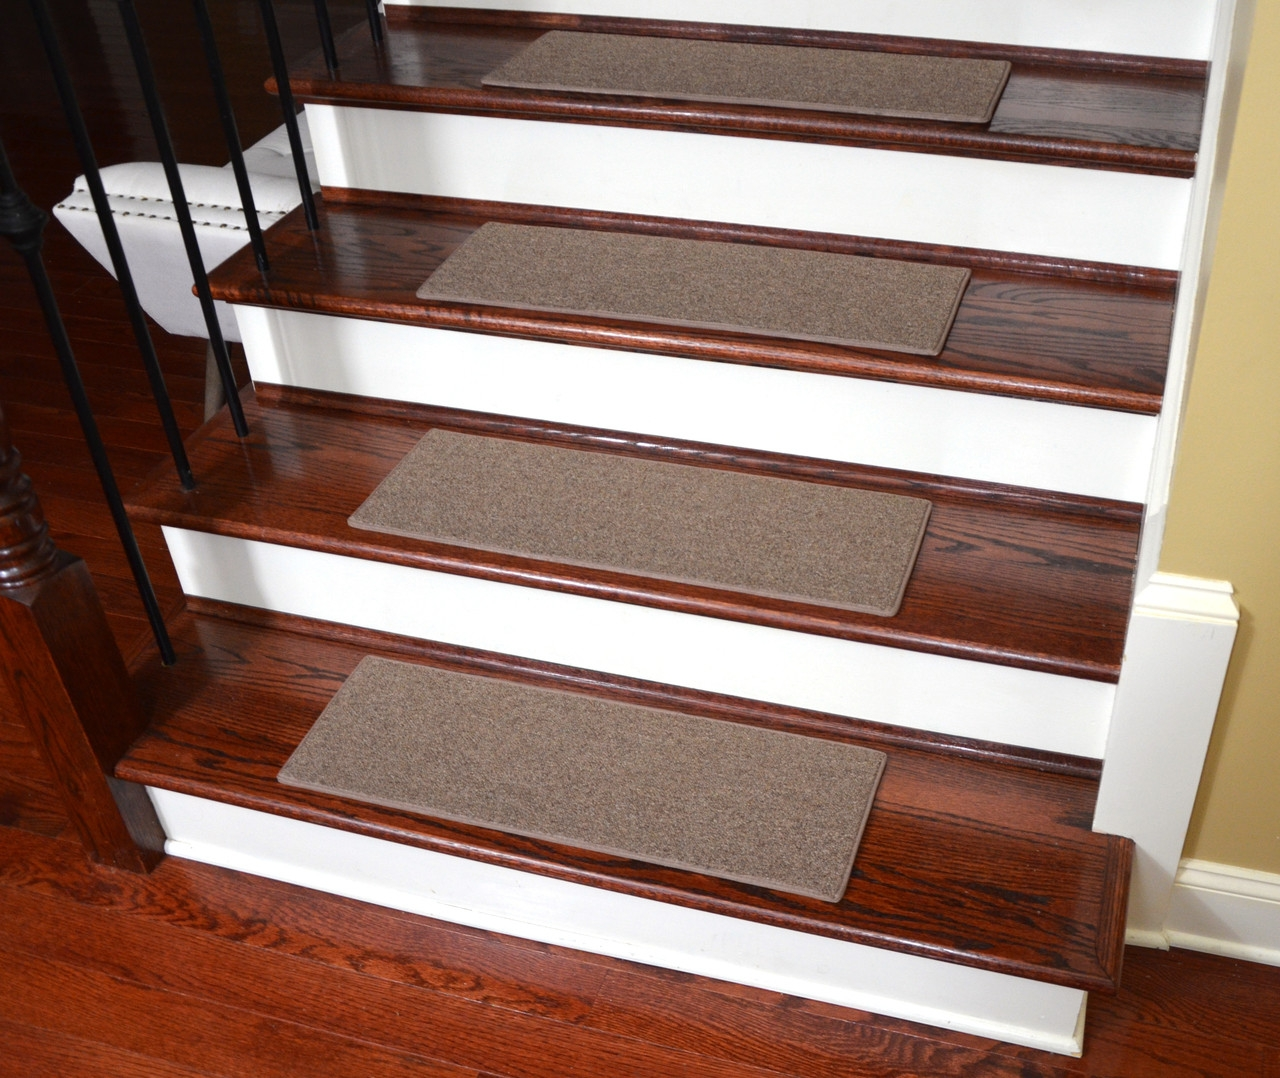 Non Slip Tape Free Carpet Stair Treads For Dogs Set Of 15 | Earth Rugs Stair Treads | Christmas Tree | Area Rugs | Rectangle Stair | Jute Fiber | Oval